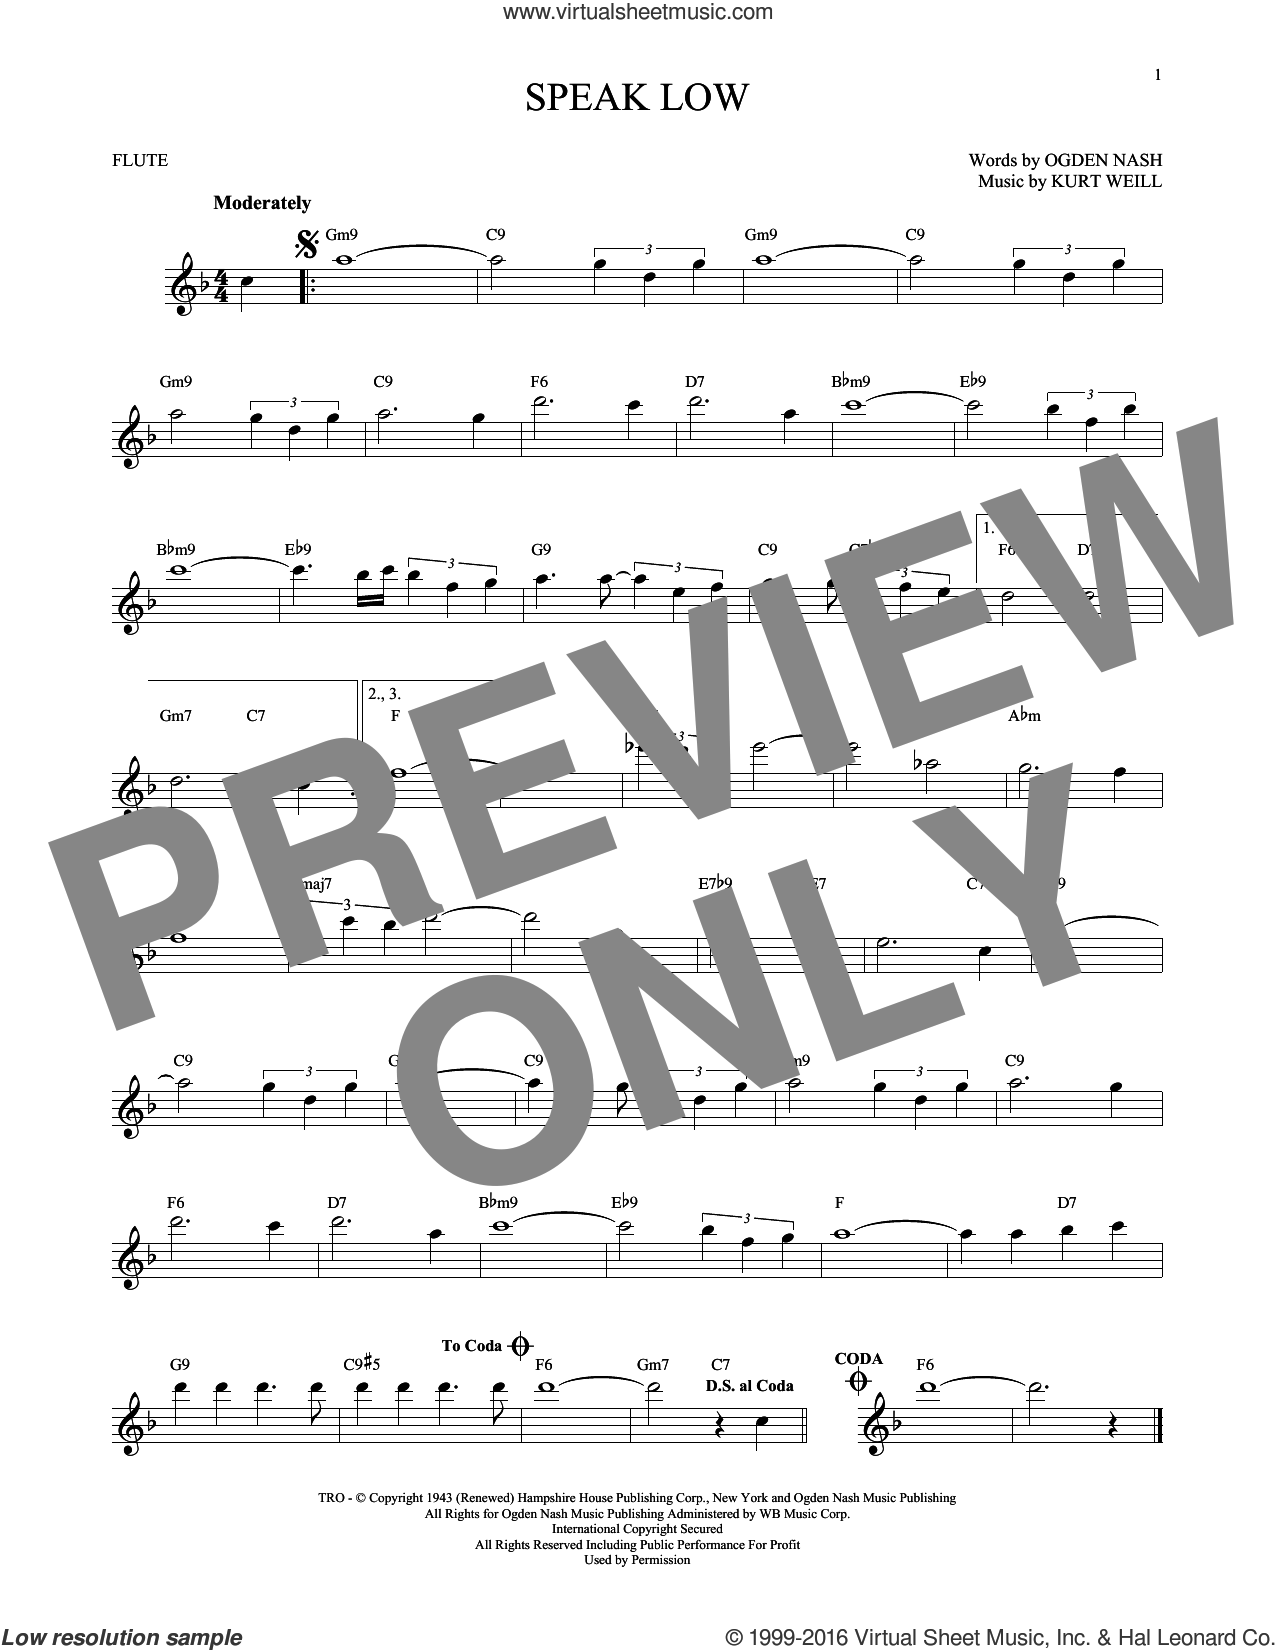 Speak Low sheet music for flute solo by Kurt Weill and Ogden Nash, intermediate skill level